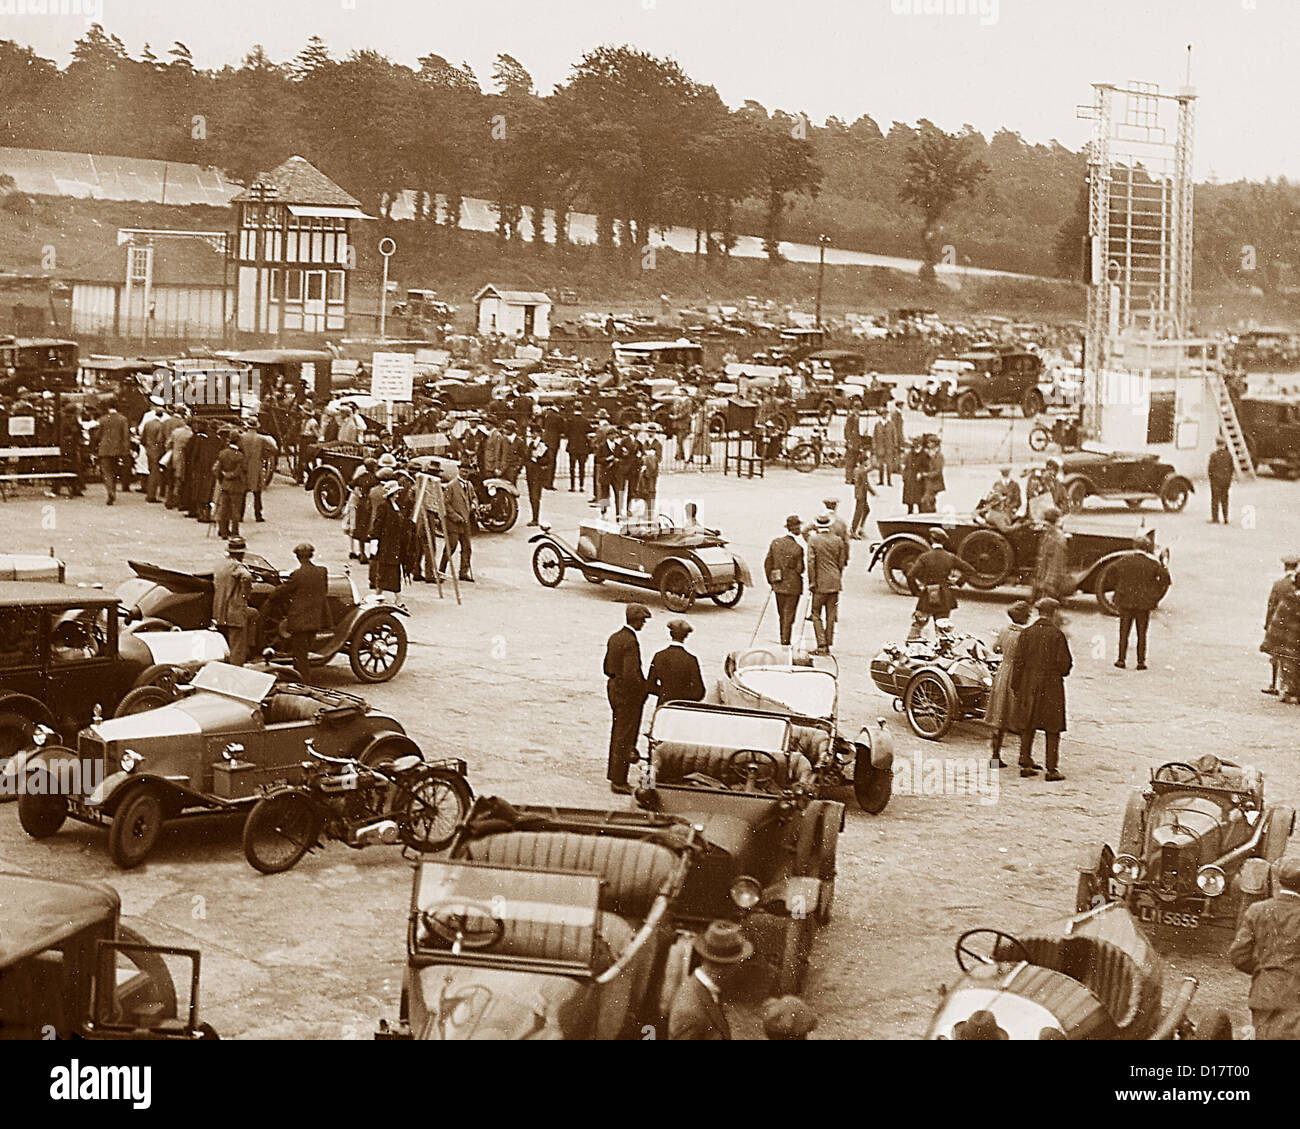 Brooklands Racing Circuit - The Paddock possibly 1930s - Stock Image